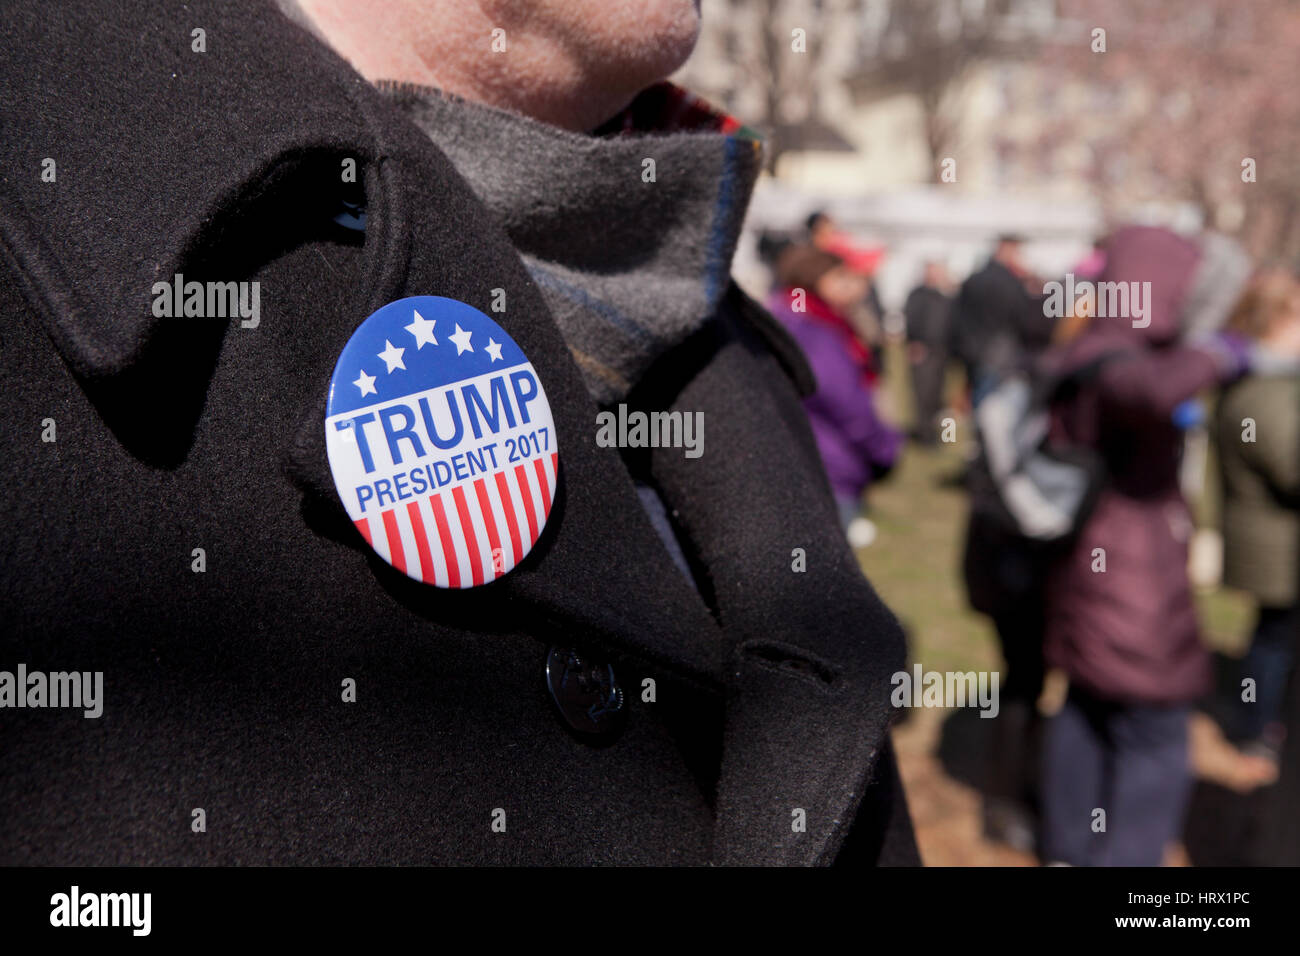 Washington, DC, USA. March 04, 2017. The 'Spirit of America' rally draws a small crowd in front of the White - Stock Image